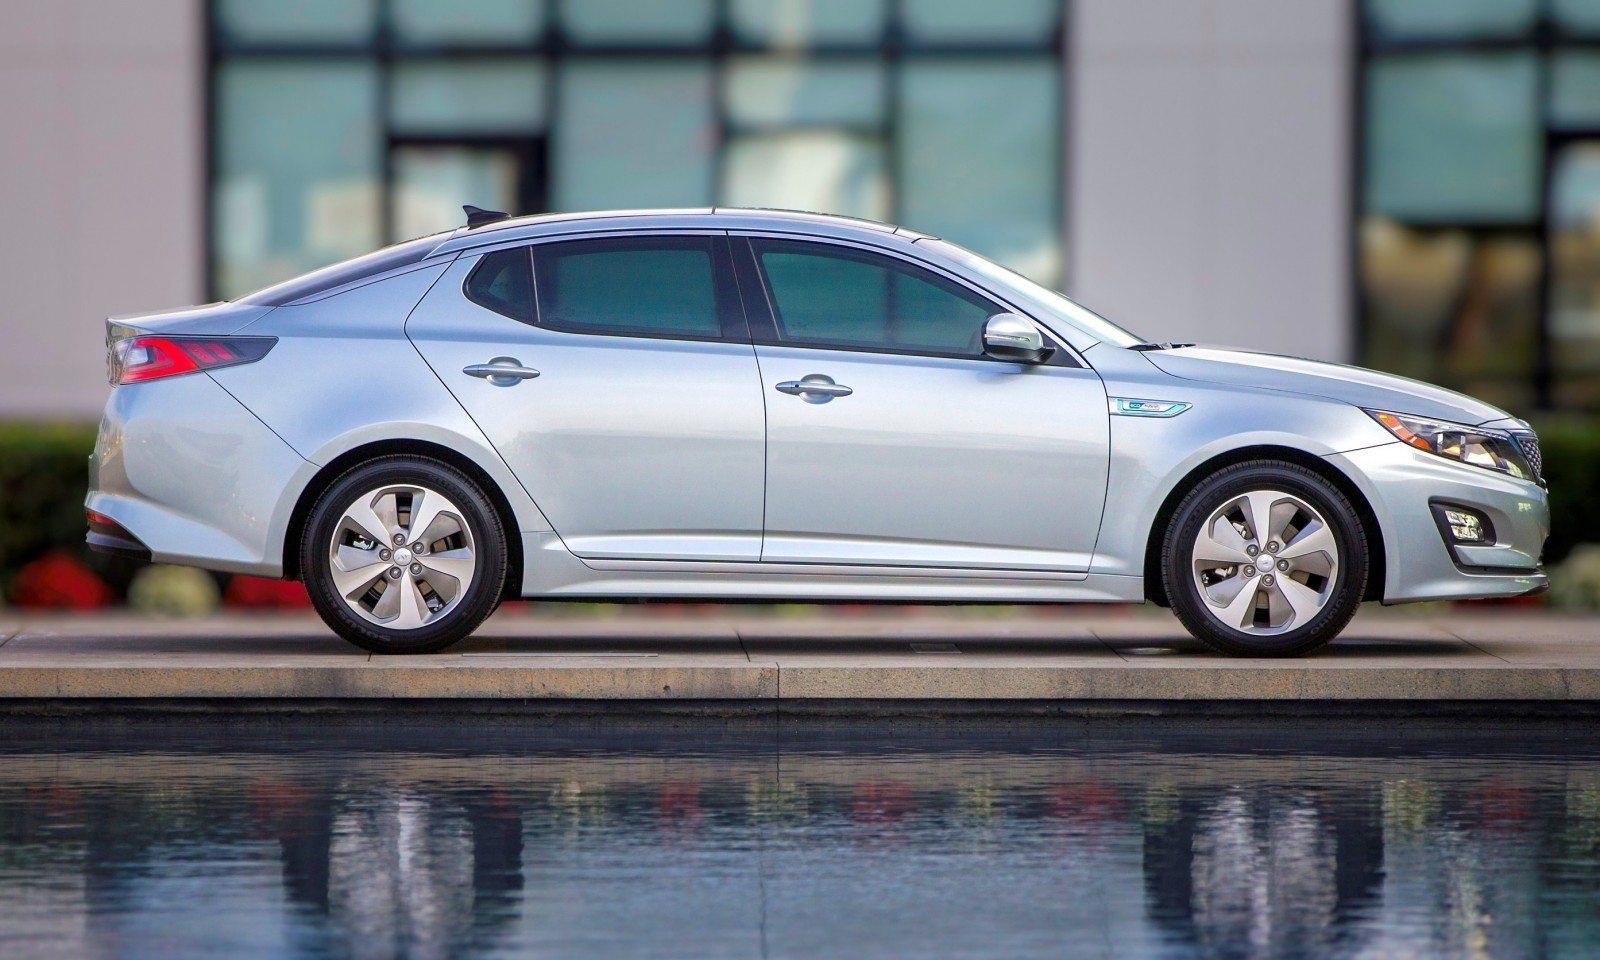 2014 Kia Optima Hybrid Updated With New Grille and LEDs Front and Rear - Specs, Features and Pricing 19